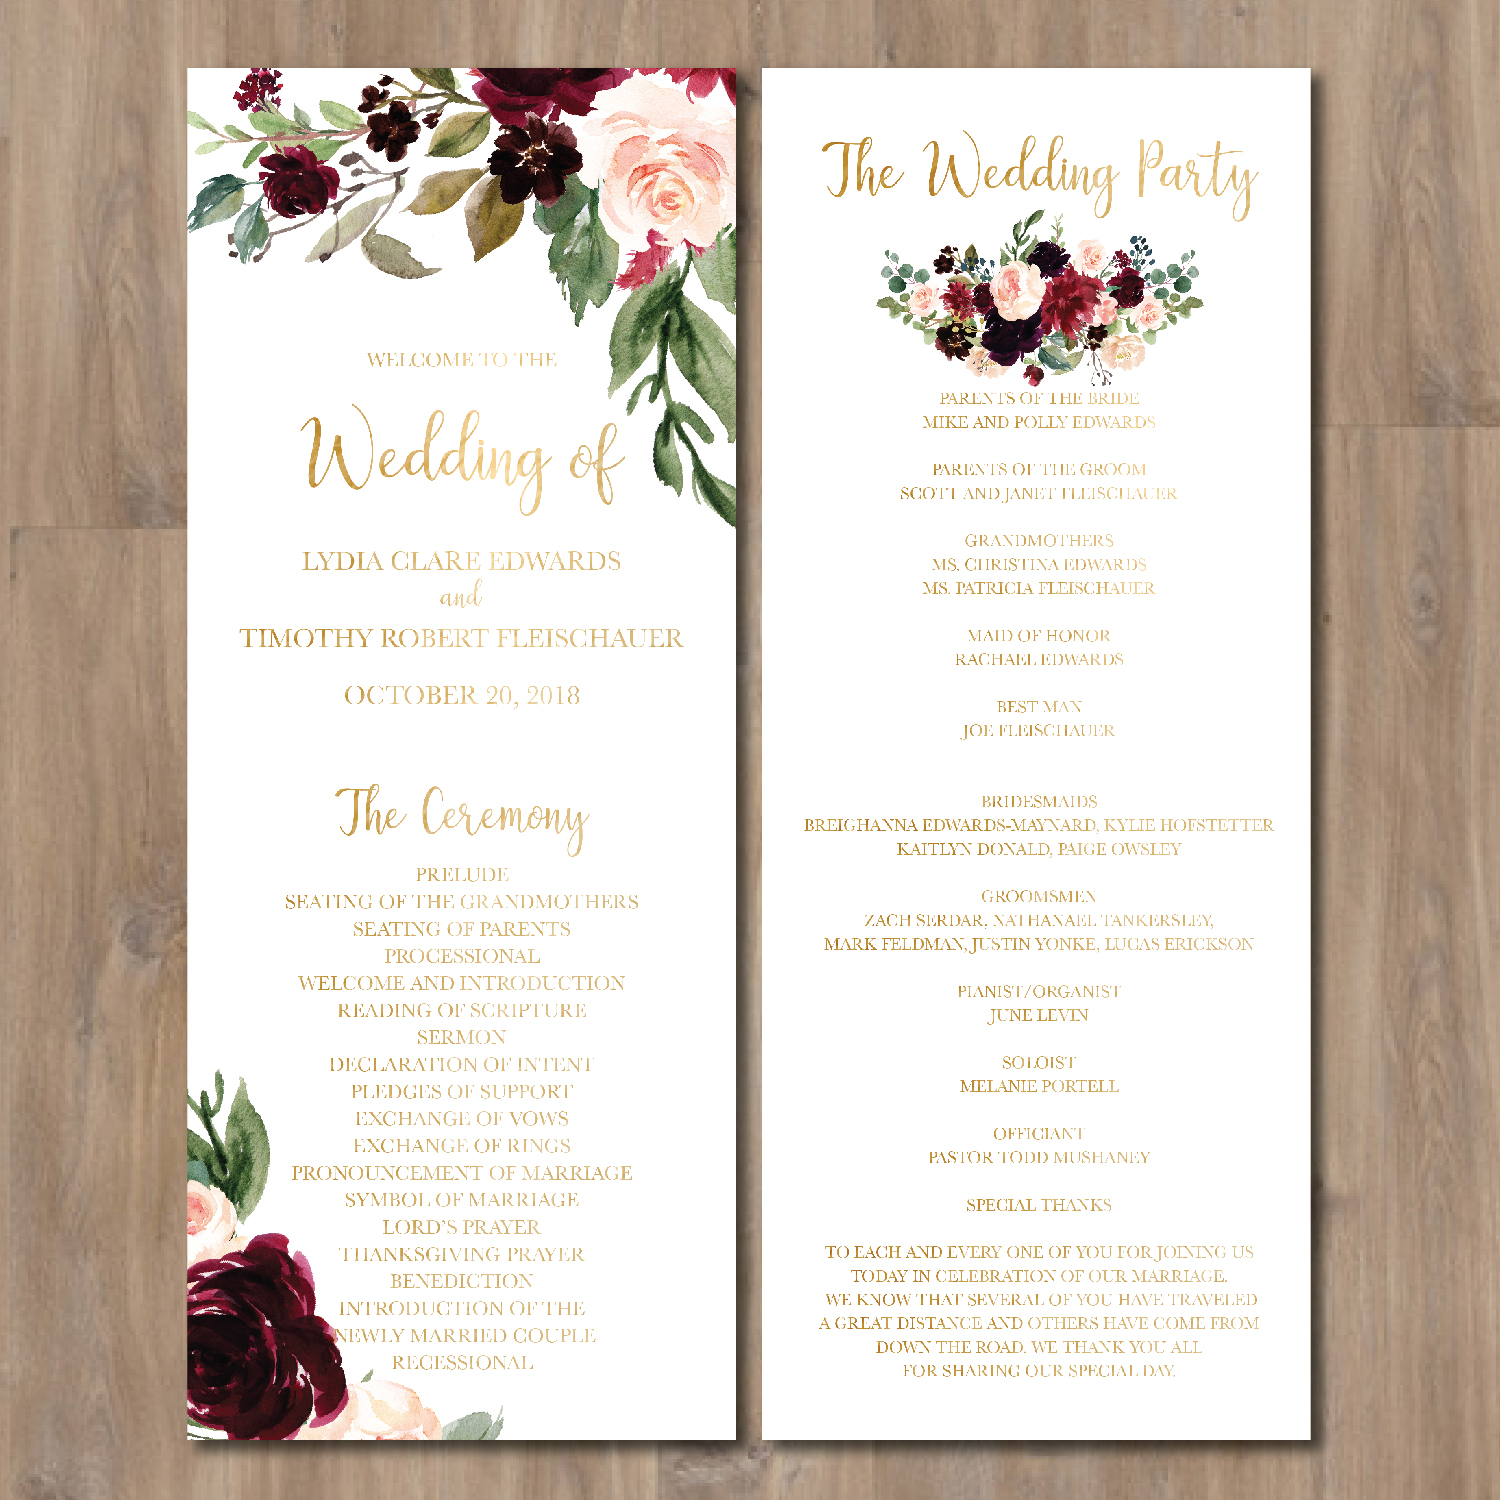 WEDDING PROGRAMS-01